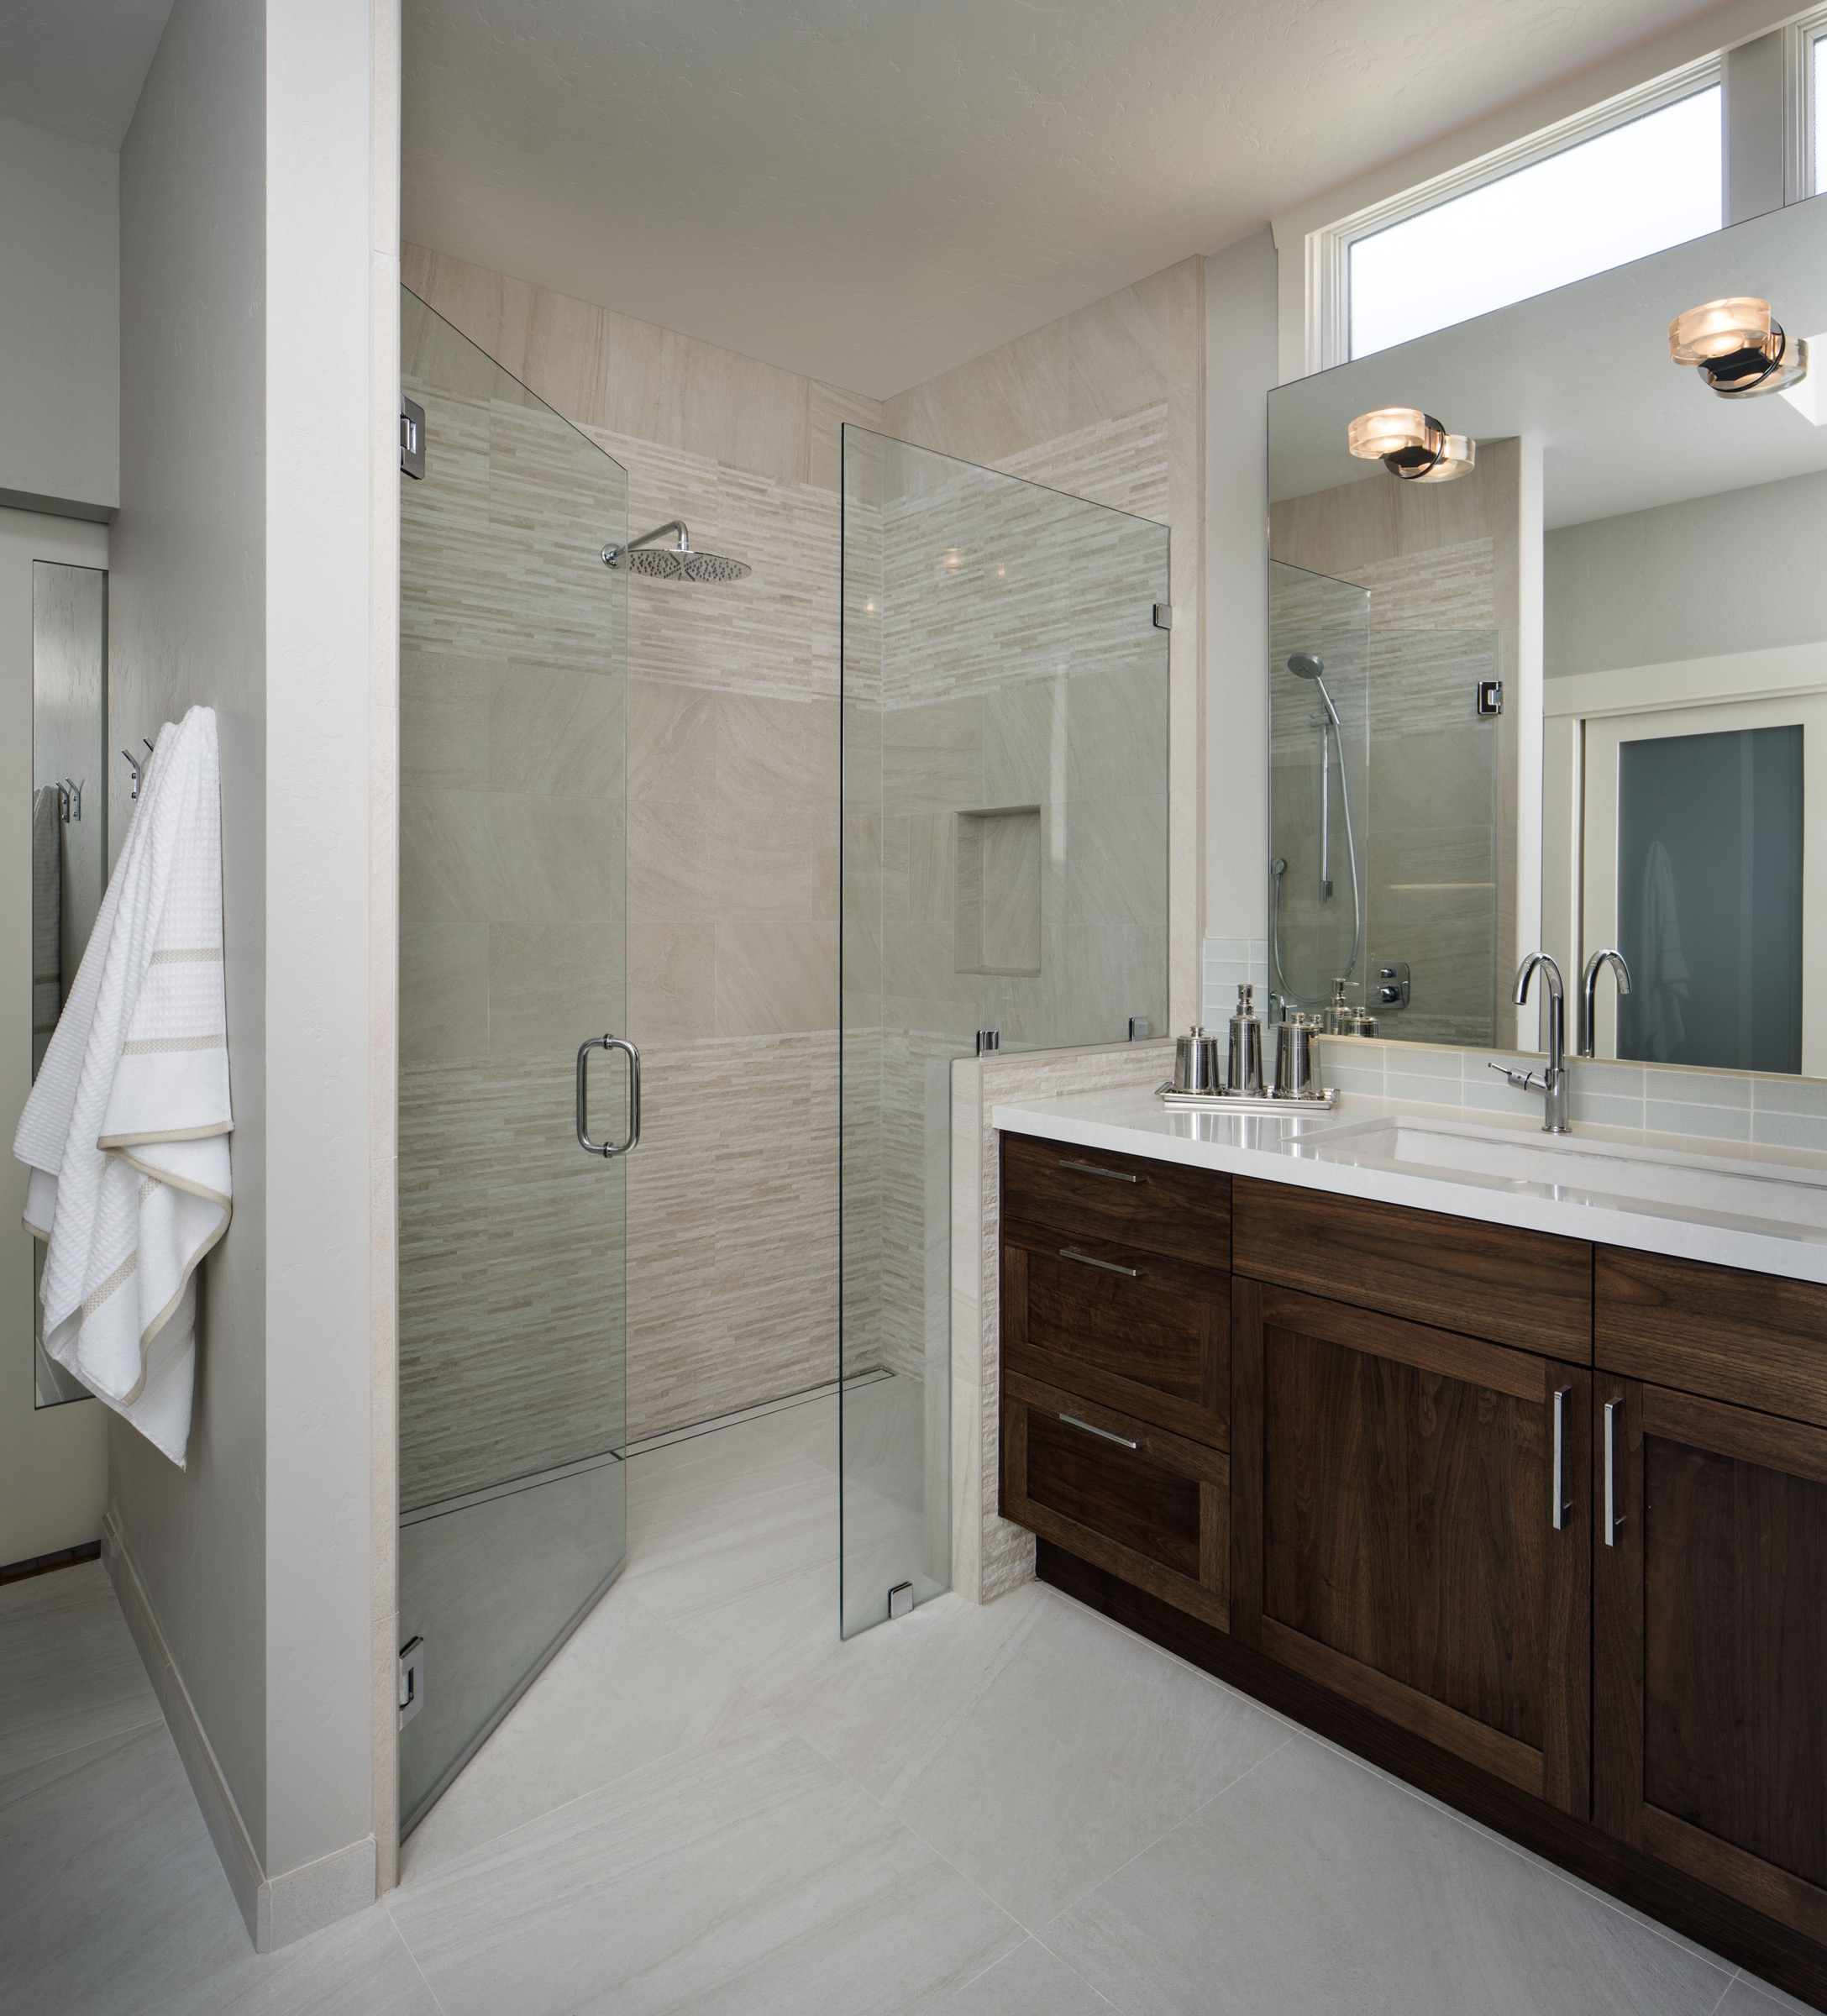 Neutral Bathroom With Glass Walk In Shower (Image 19 of 29)